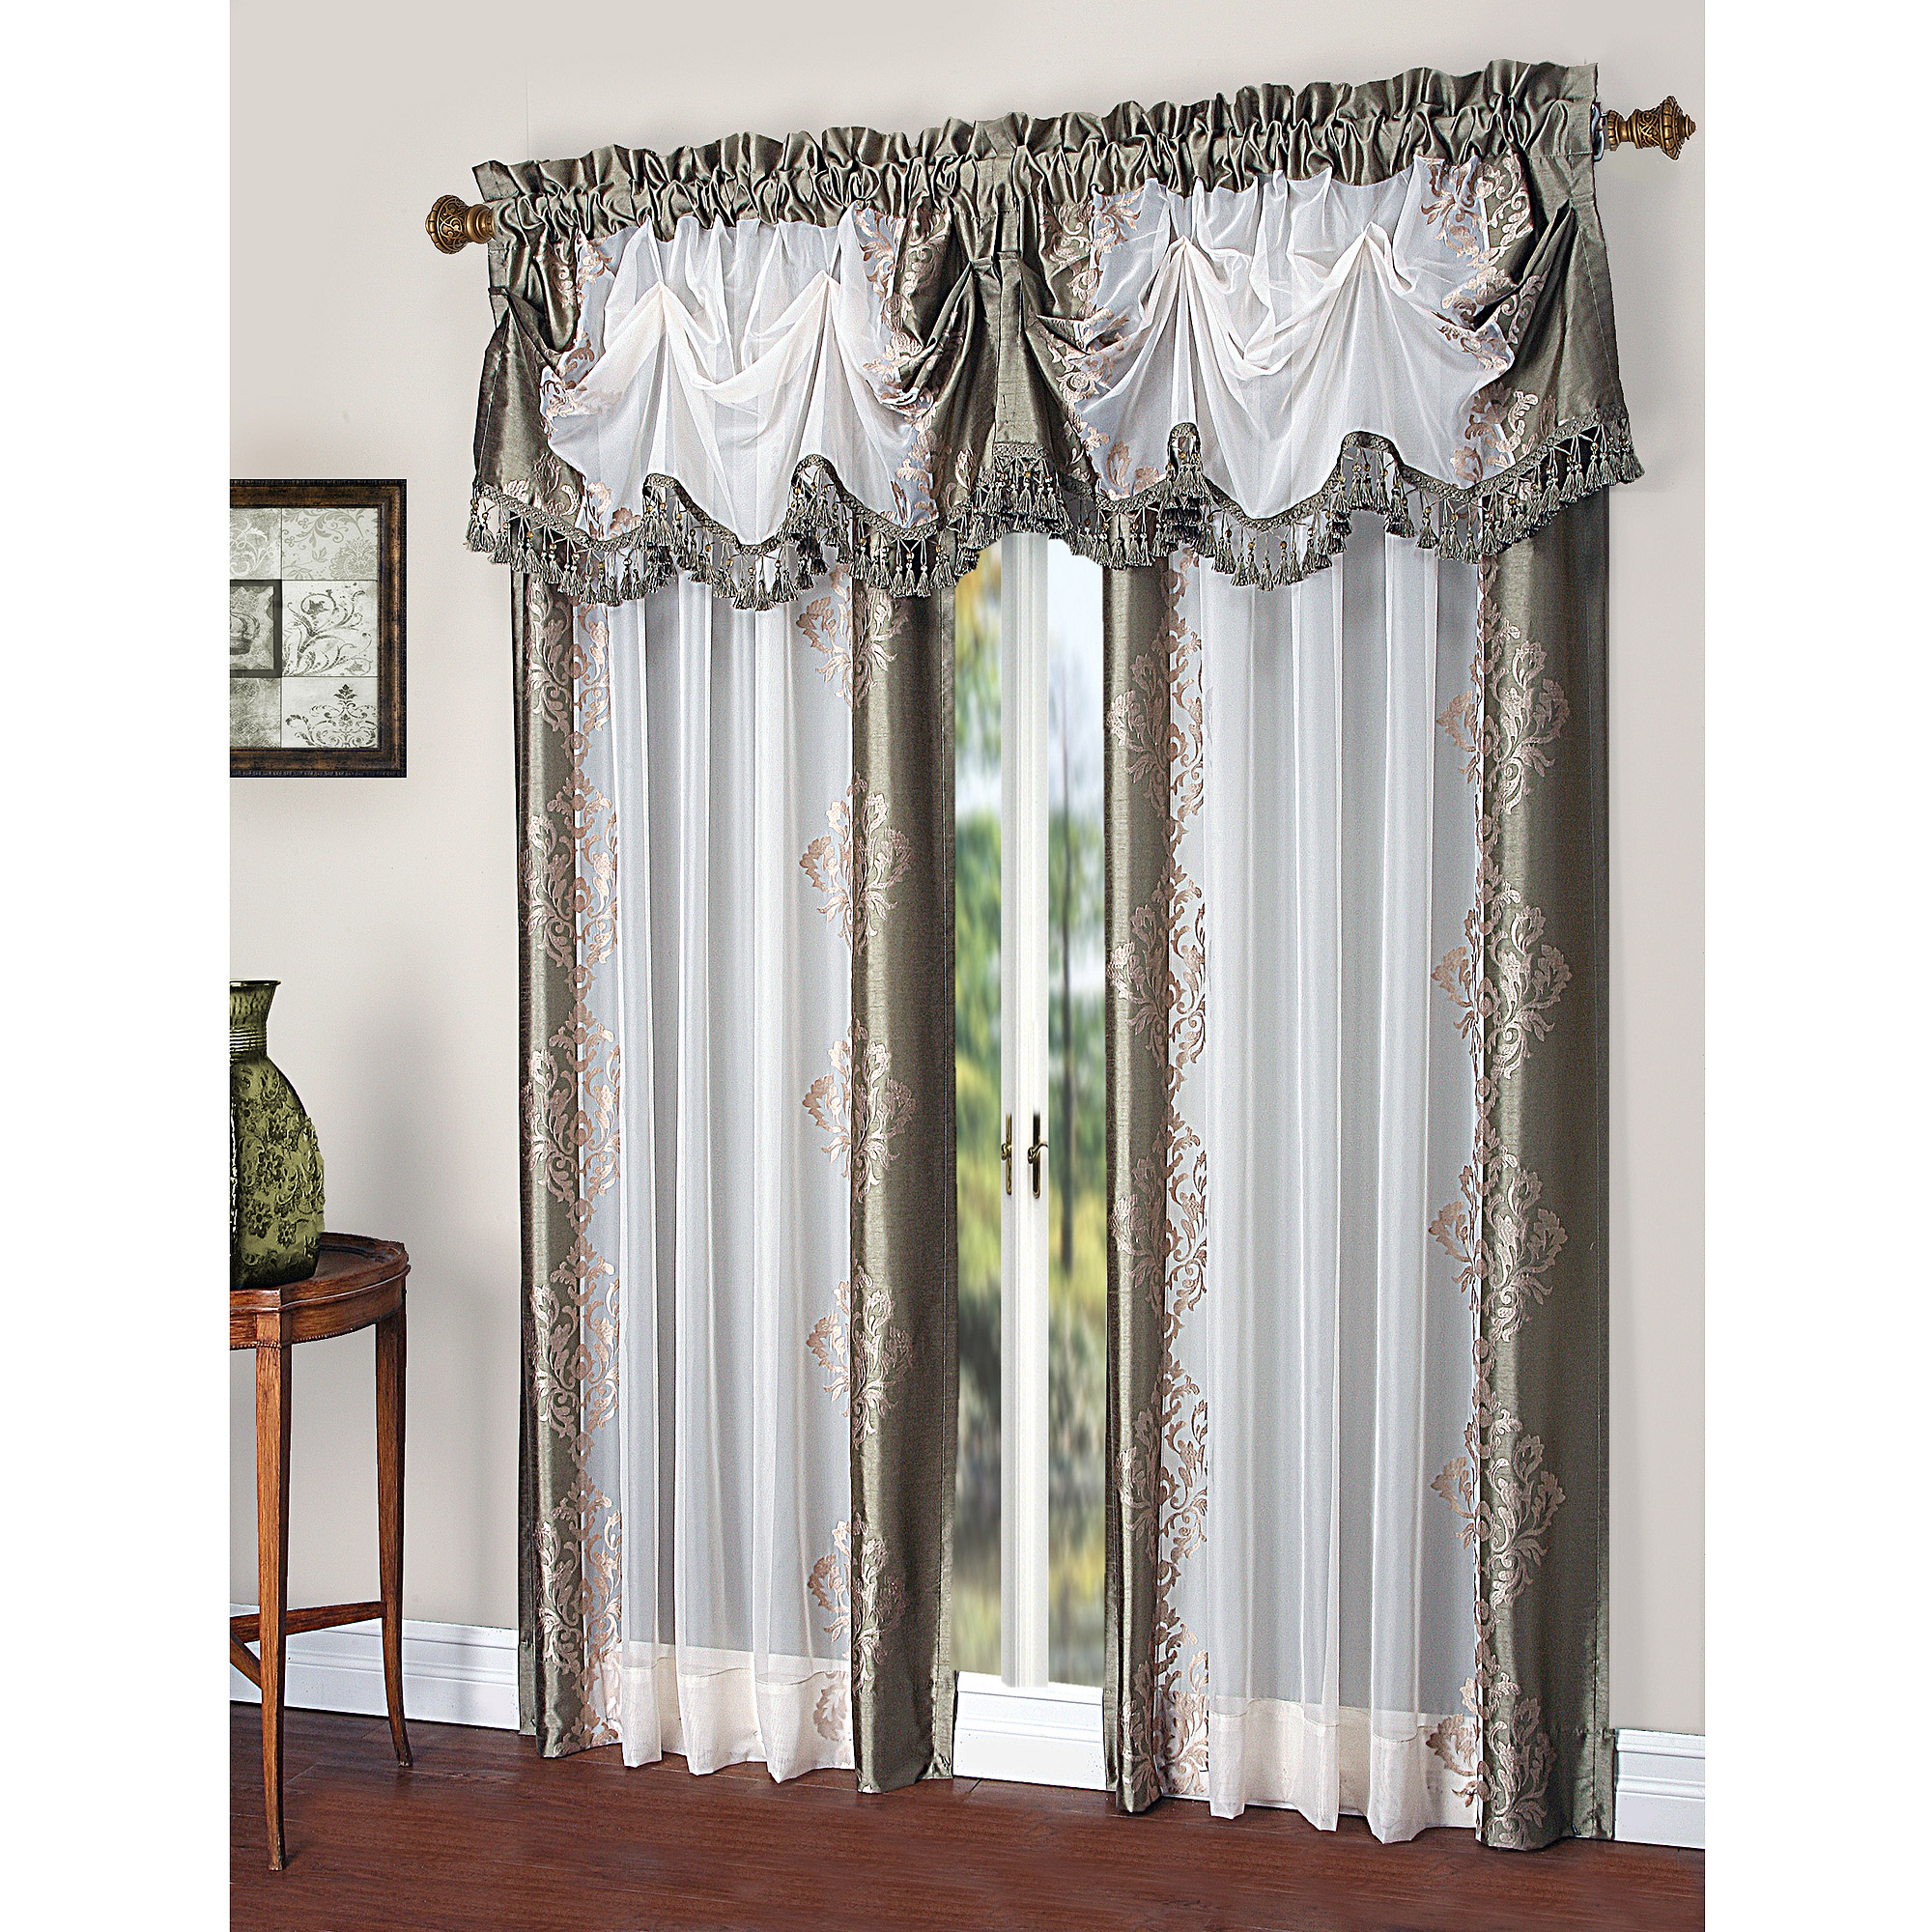 Danbury Embroidered Pieced Voile Faux Silk Polyester Curtain Panel In Ofloral Embroidered Faux Silk Window Curtain Panels (View 9 of 20)